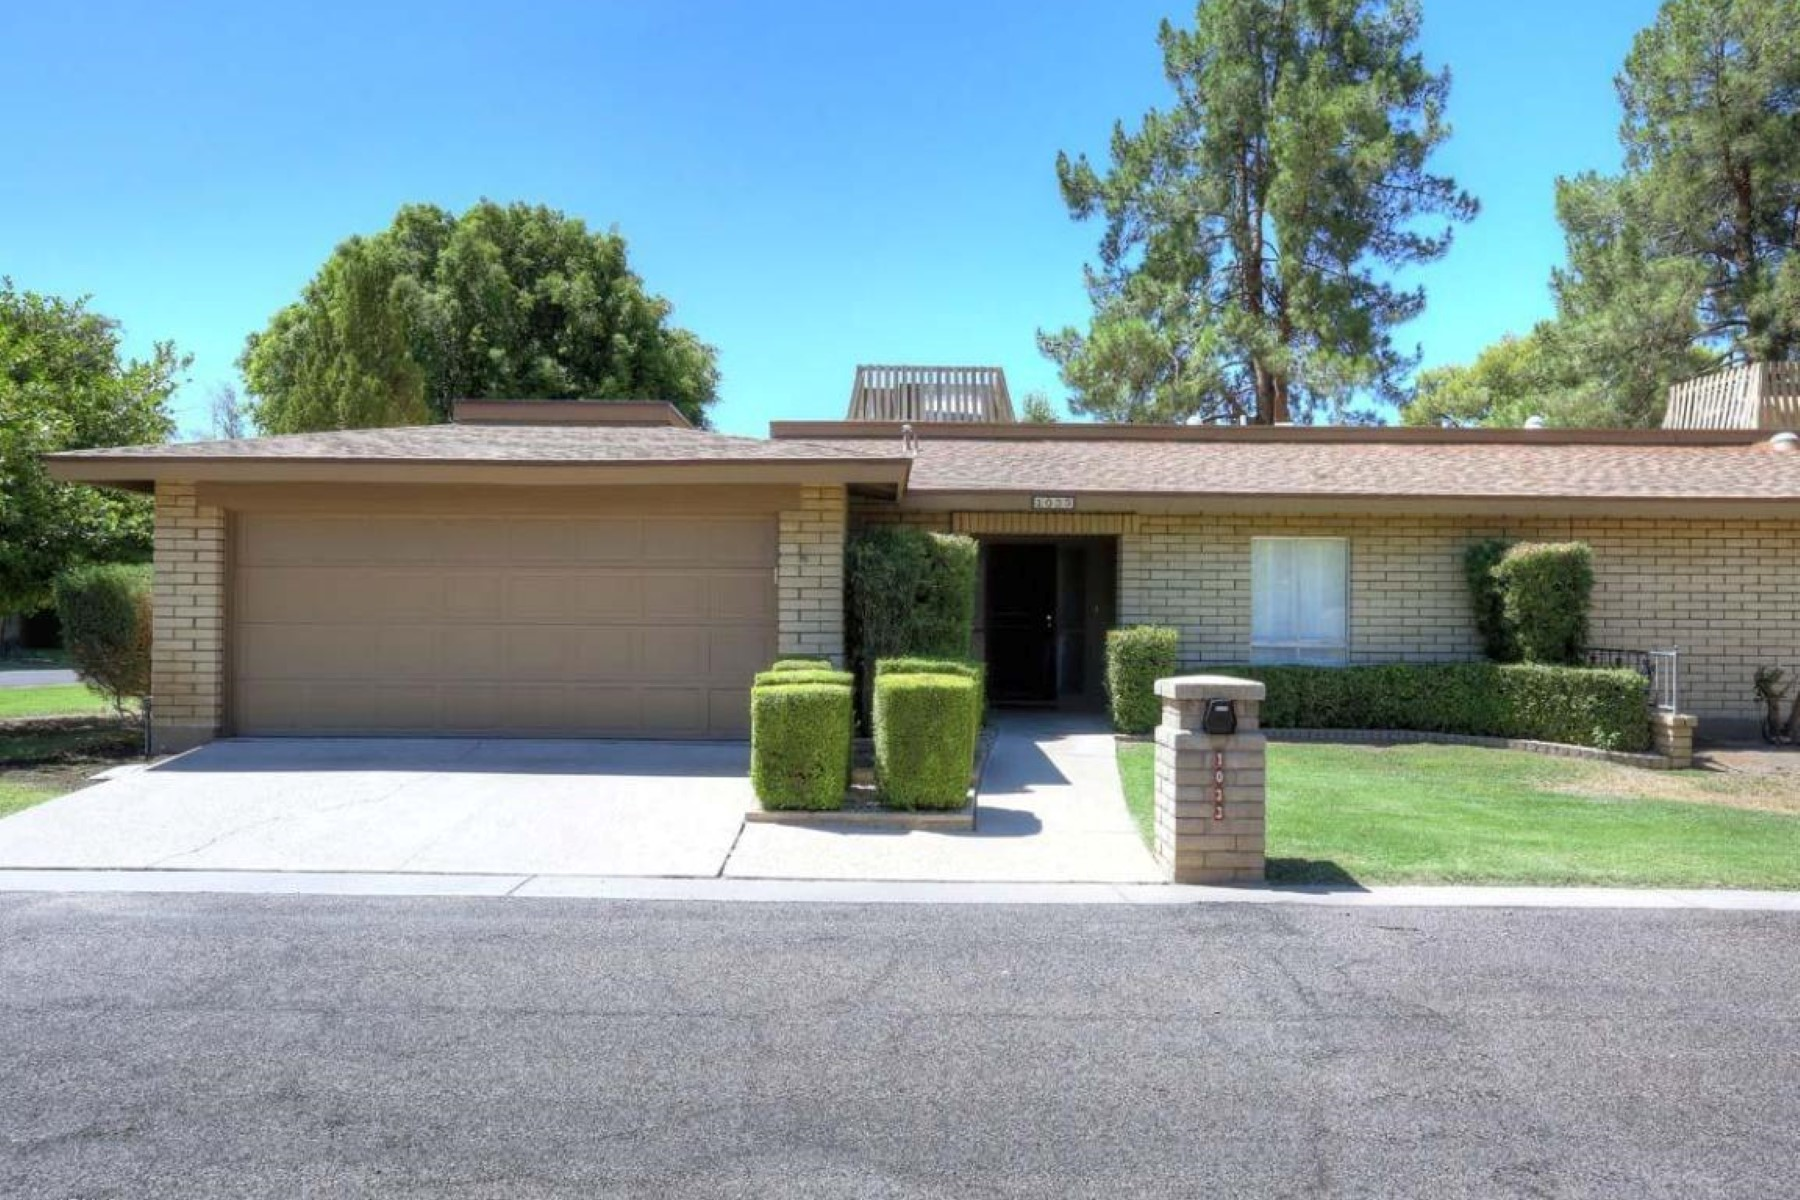 Townhouse for Sale at Welcome to this quiet but friendly patio home neighborhood. 1033 E WAGON WHEEL DR Phoenix, Arizona 85020 United States